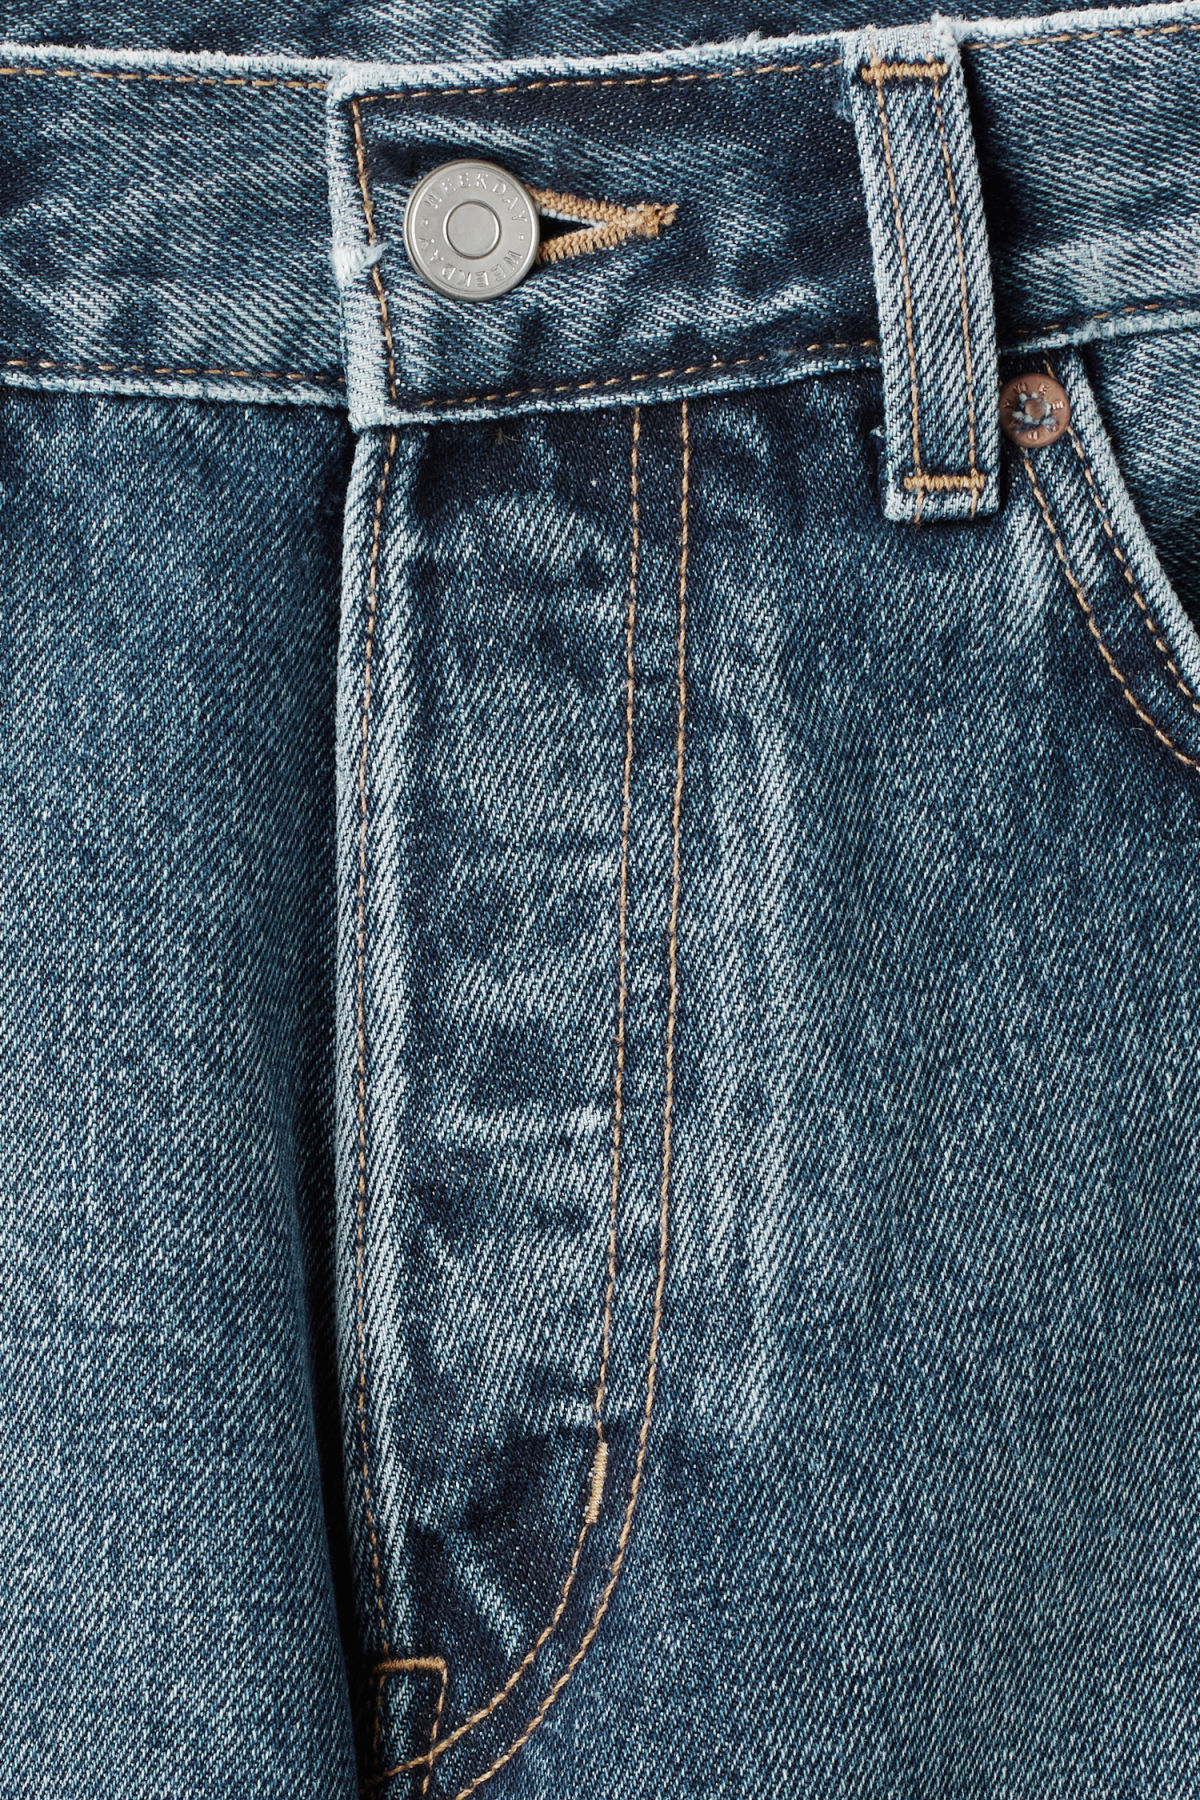 Detailed image of Weekday pine marwin blue jeans in blue